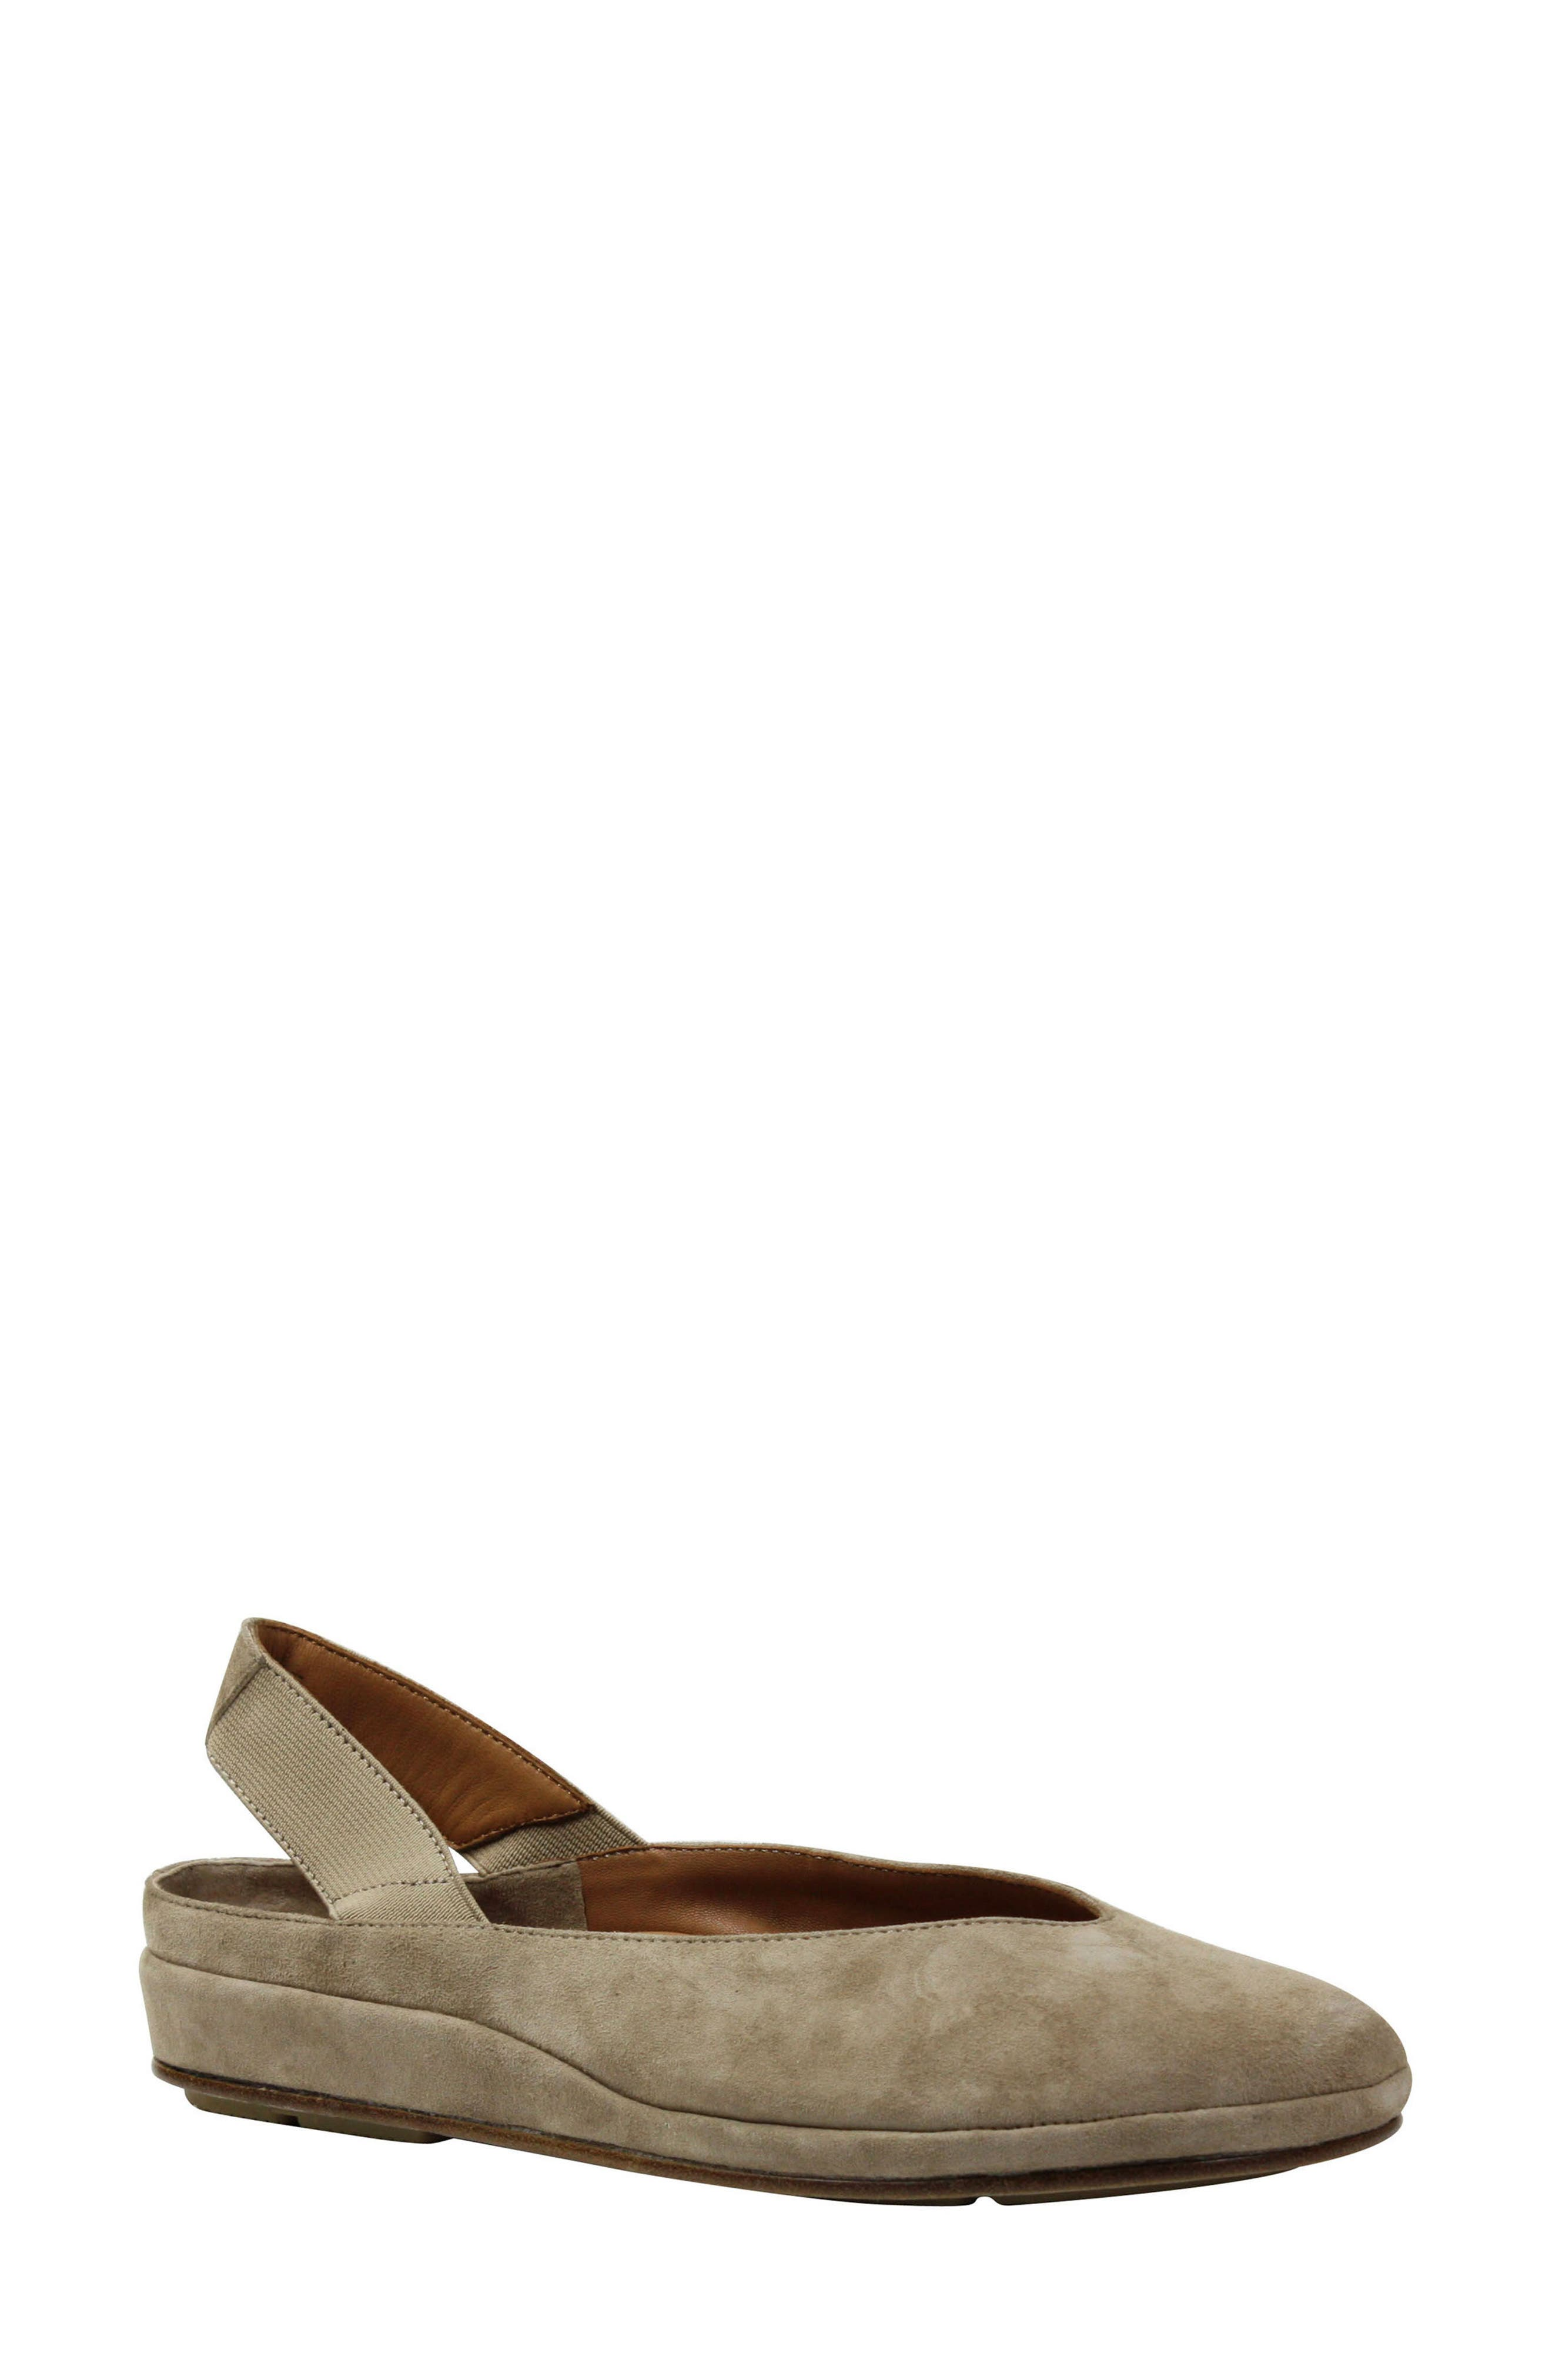 L'AMOUR DES PIEDS, 'Cypris' Slingback Wedge, Main thumbnail 1, color, TAUPE SUEDE